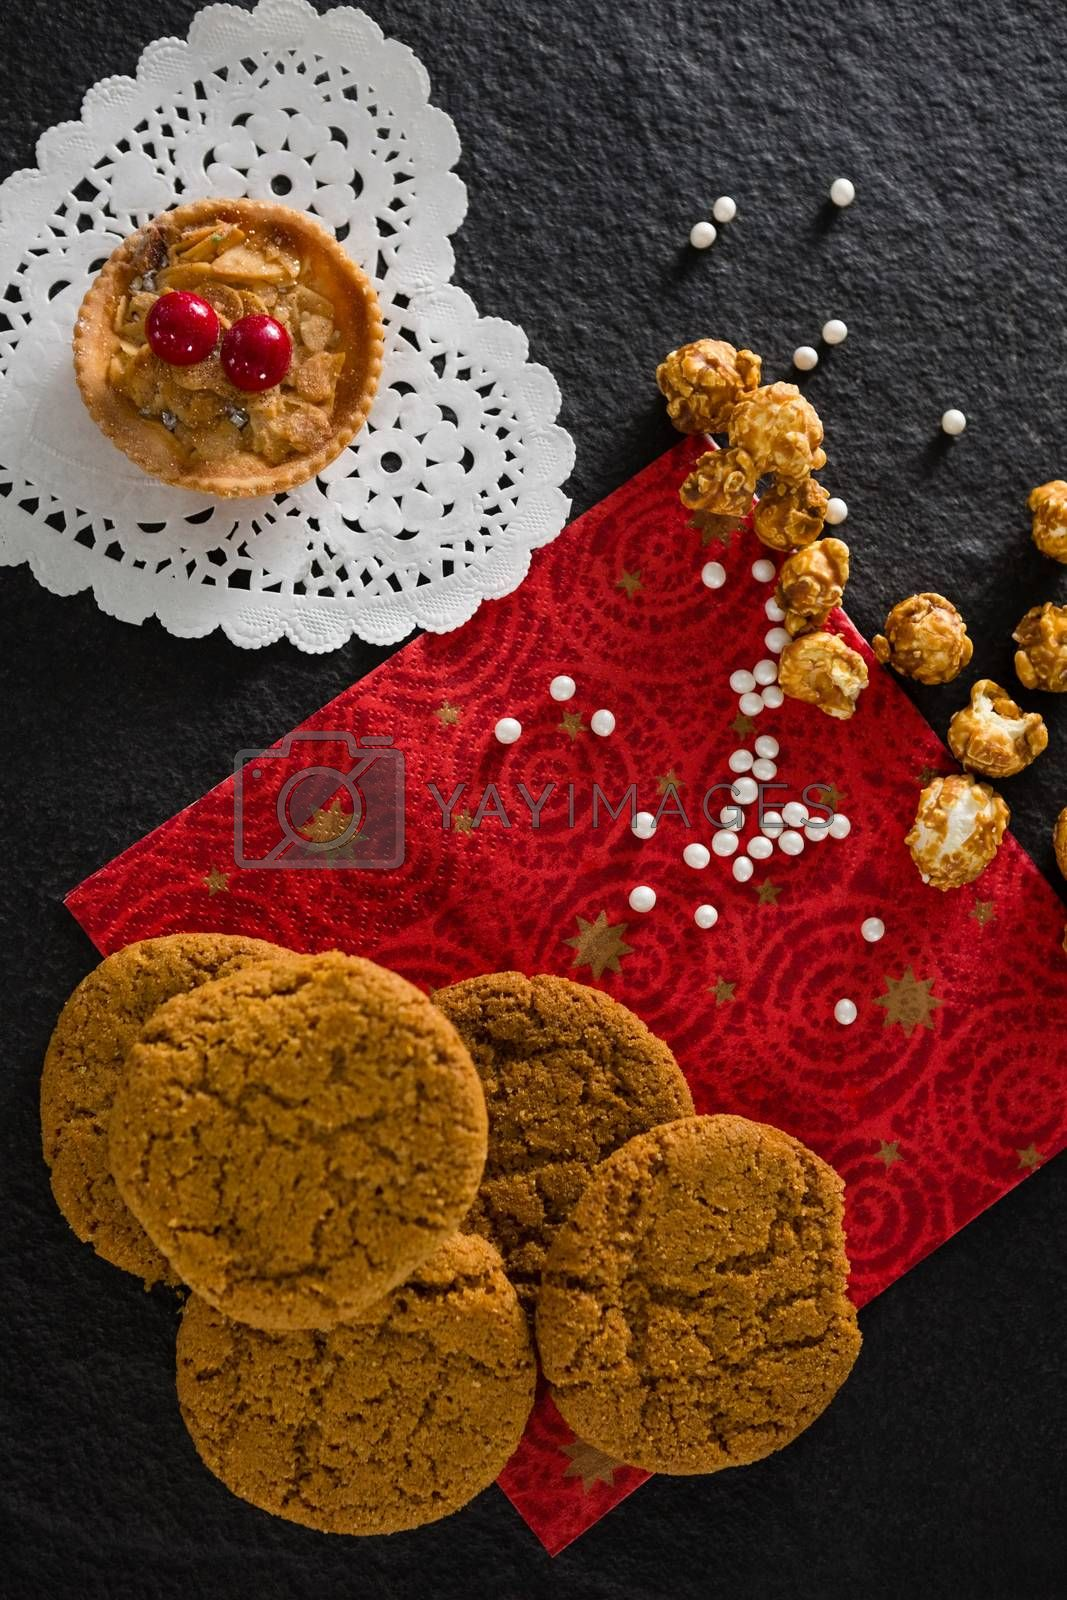 Tart and cookies with pearls on red place mat by Wavebreakmedia